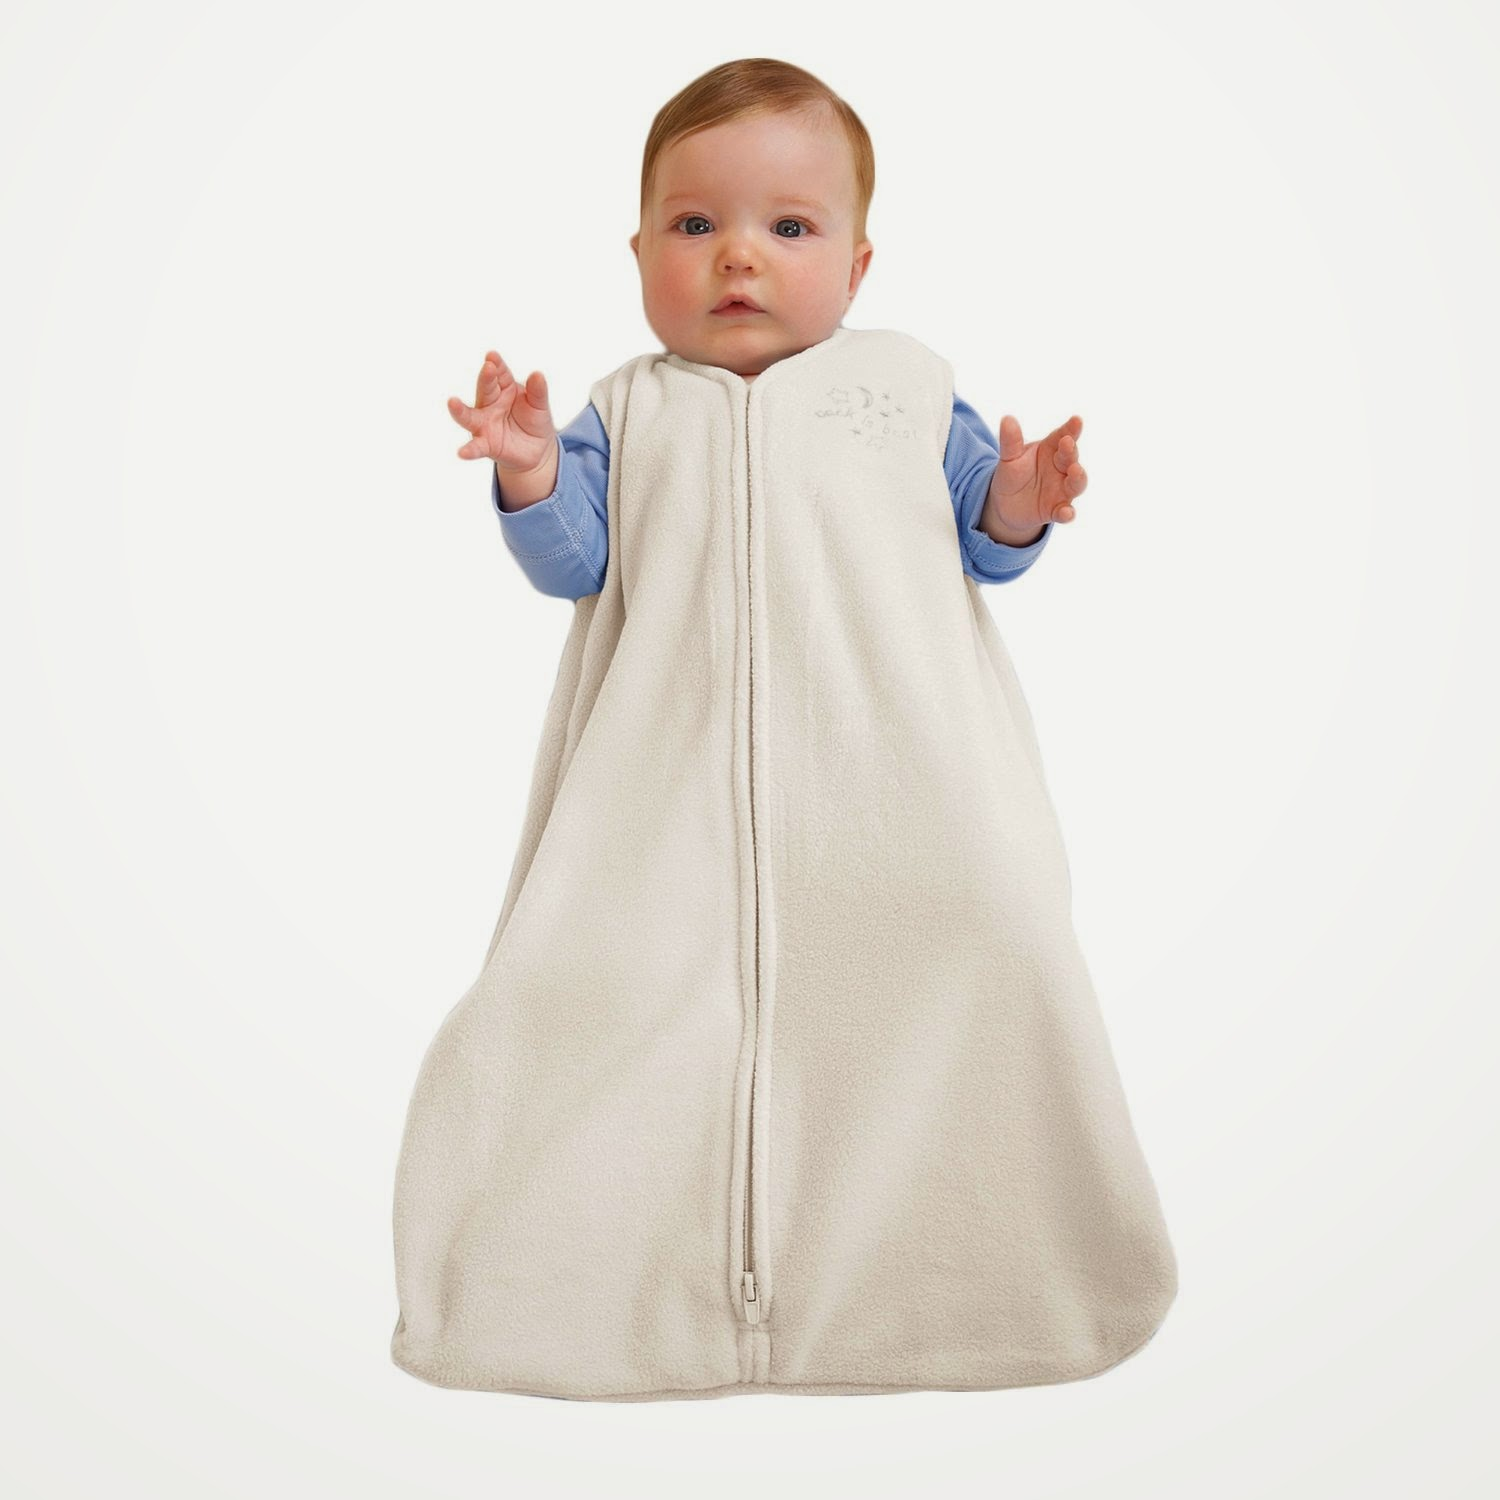 https://www.amazon.com/SleepSack-Micro-Fleece-Wearable-Blanket-Cream/dp/B0000BX8MS/ref=as_li_ss_til?tag=soutsubusavi-20&linkCode=w01&creativeASIN=B0000BX8MS